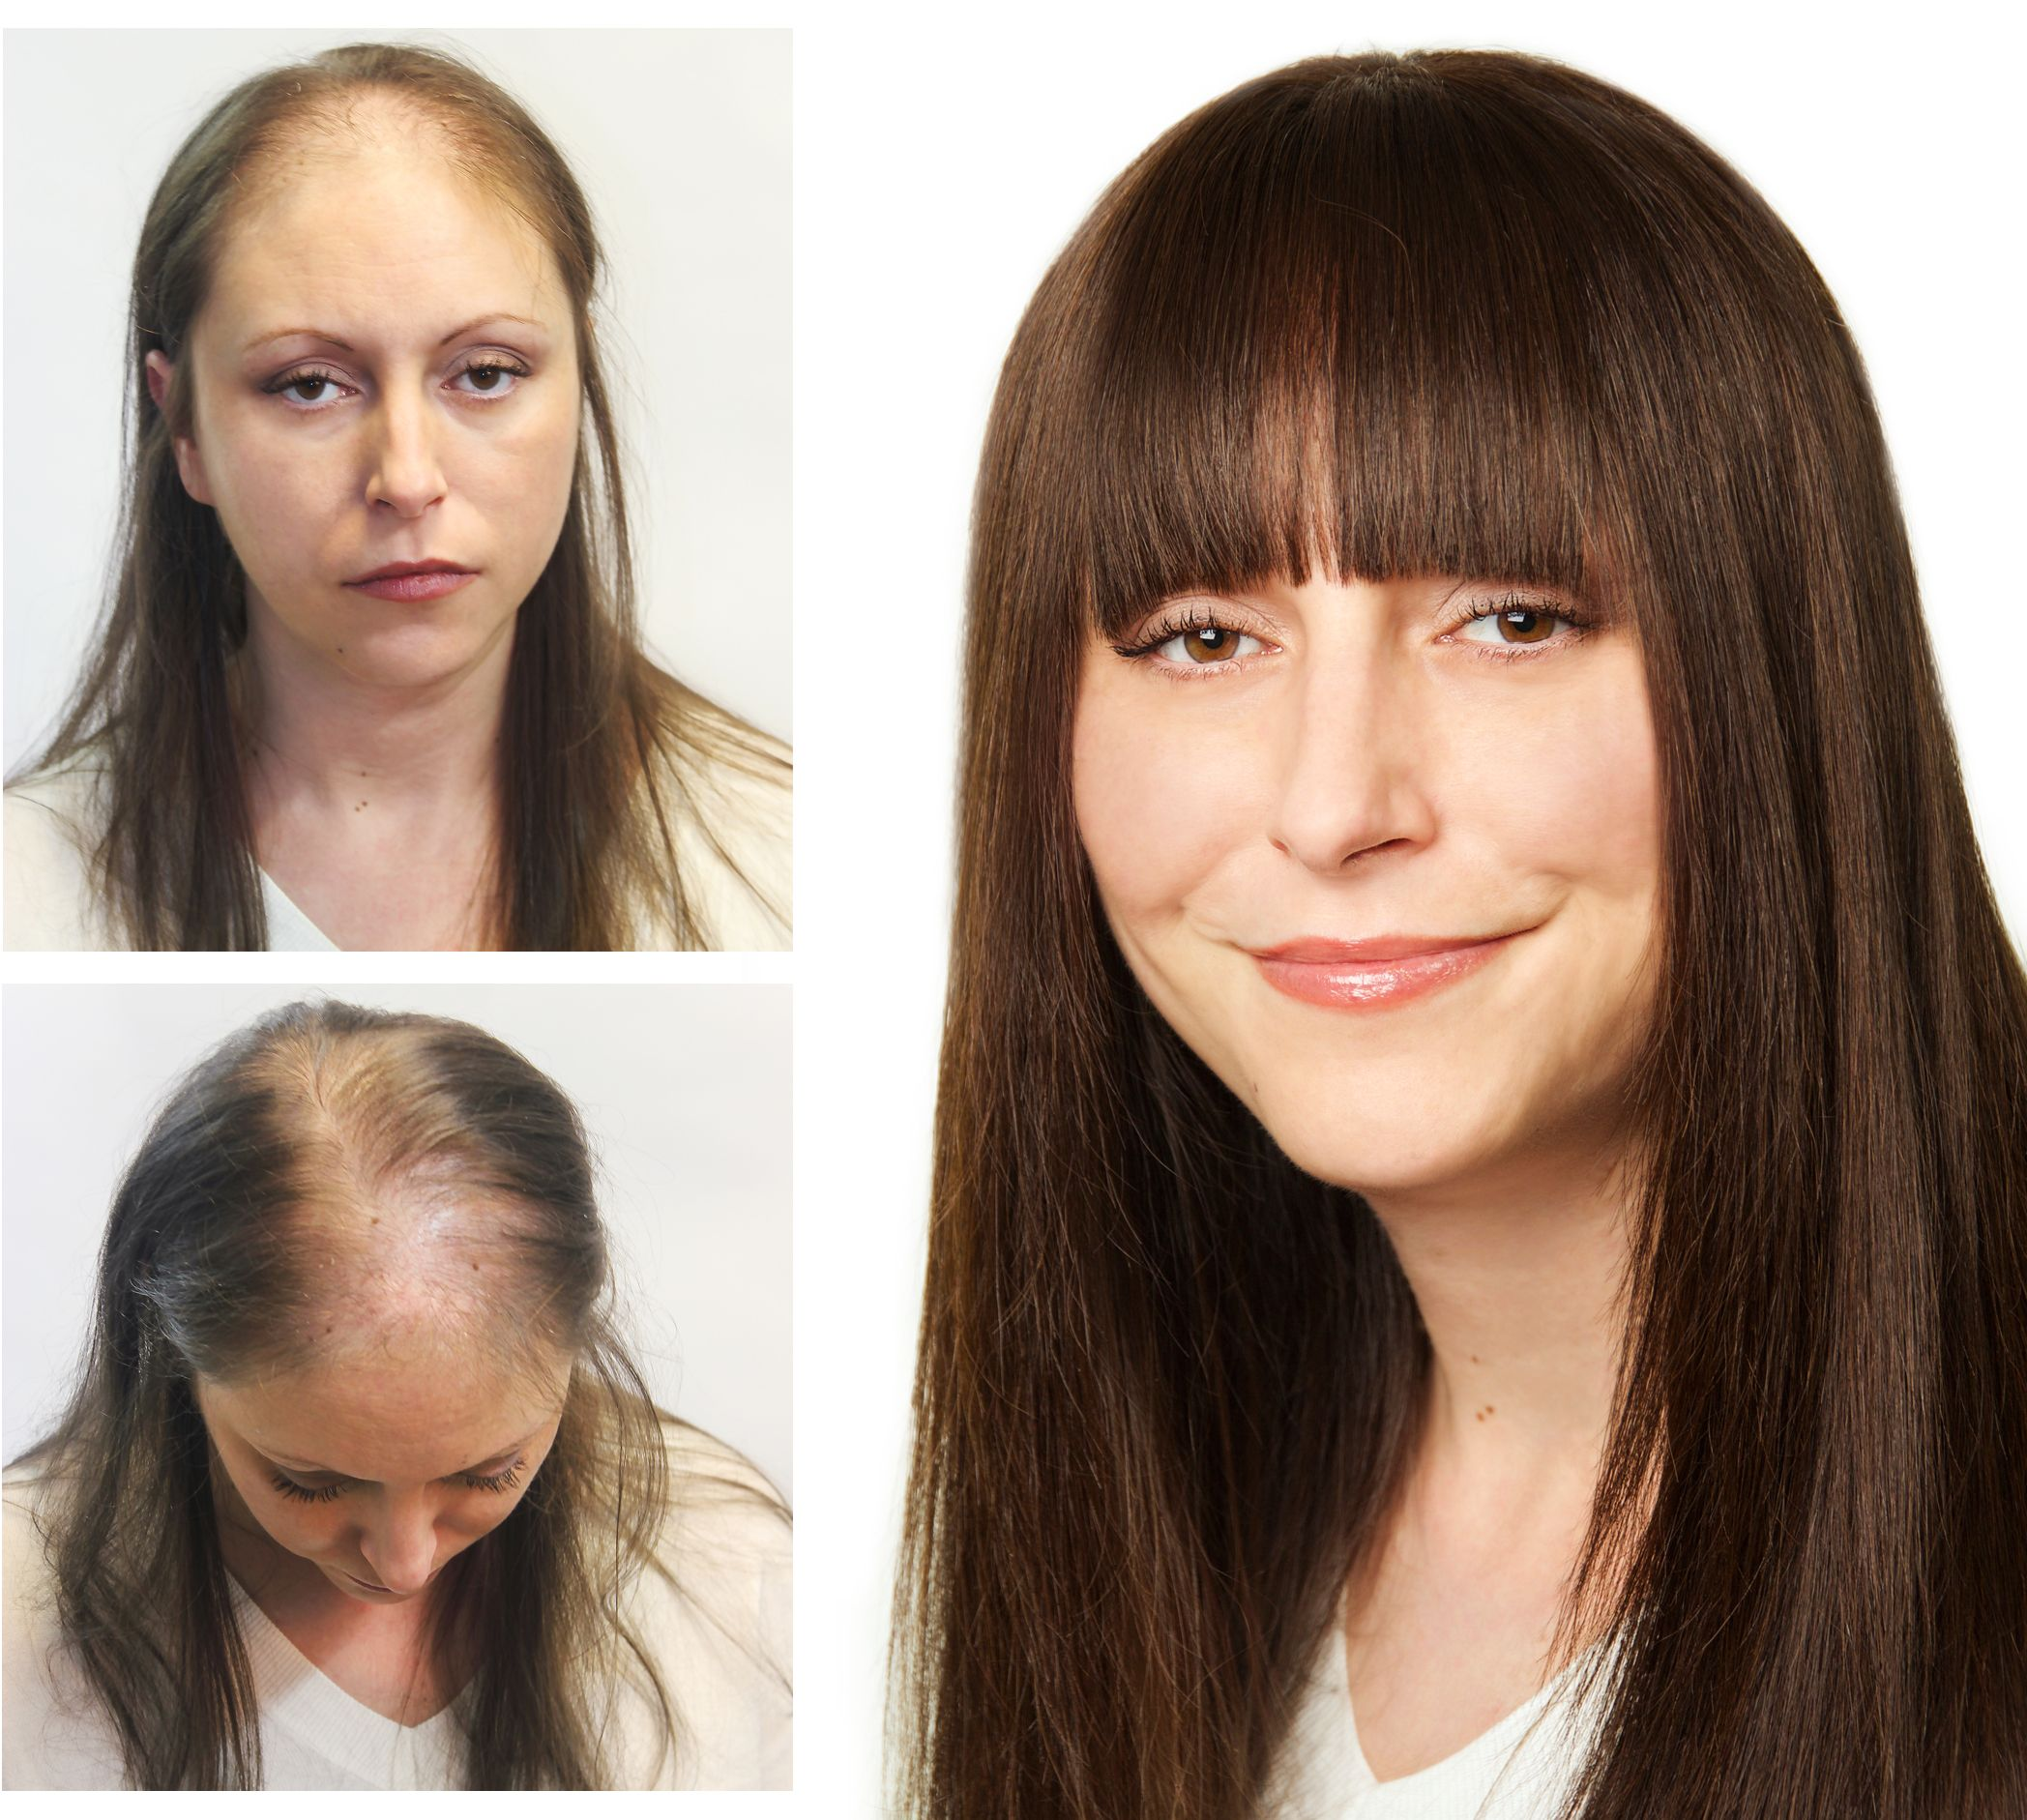 Our Client Helen Who Suffers From Genetic Hair Thinning Before And